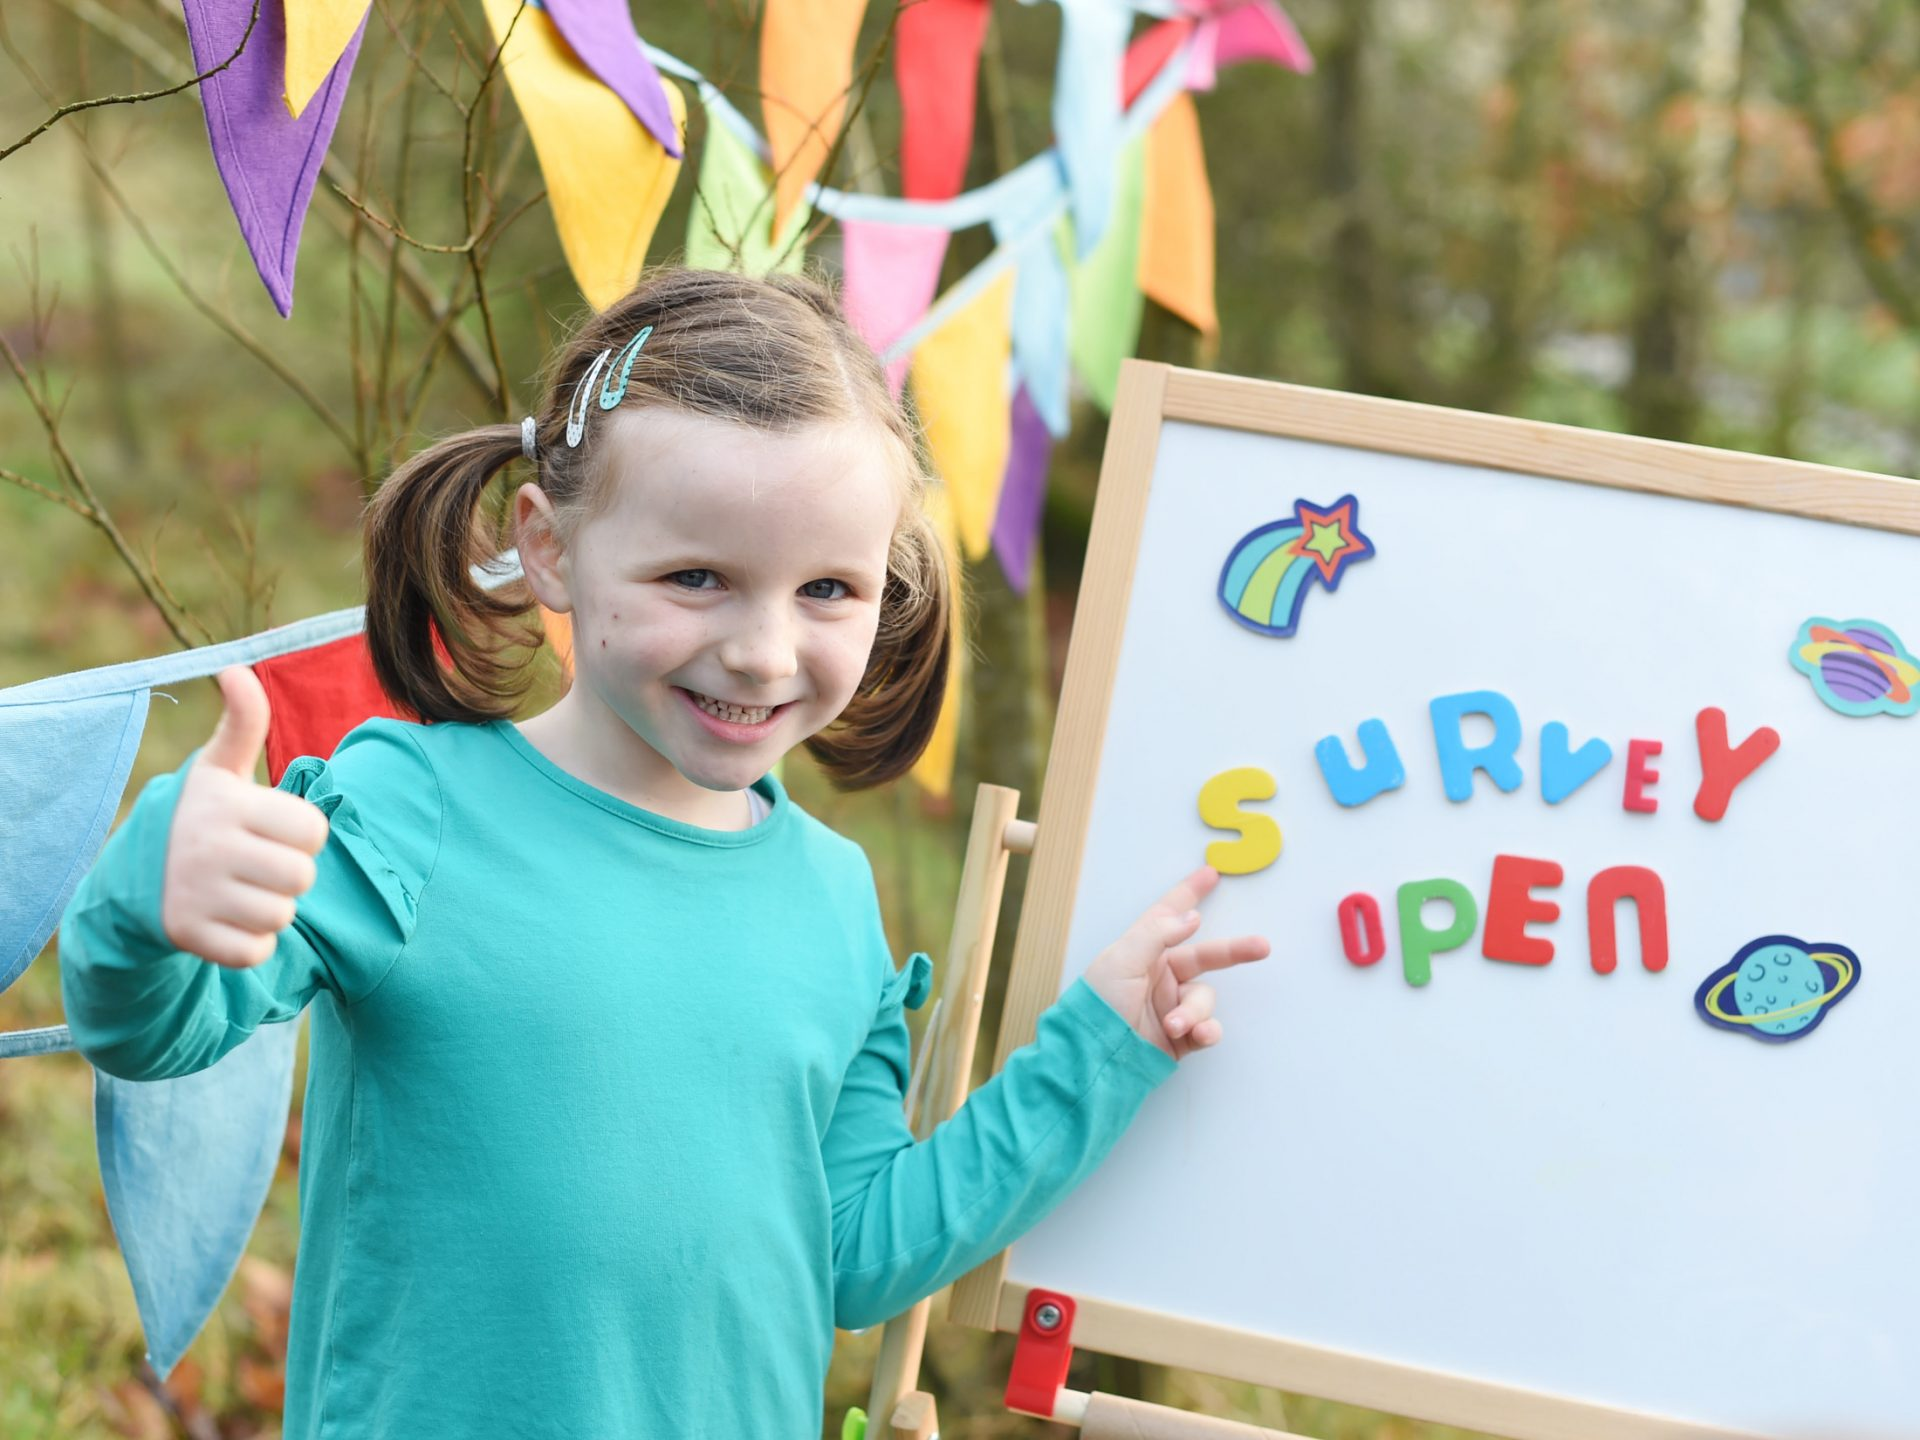 Northern Ireland Childcare Survey 2020 now open!